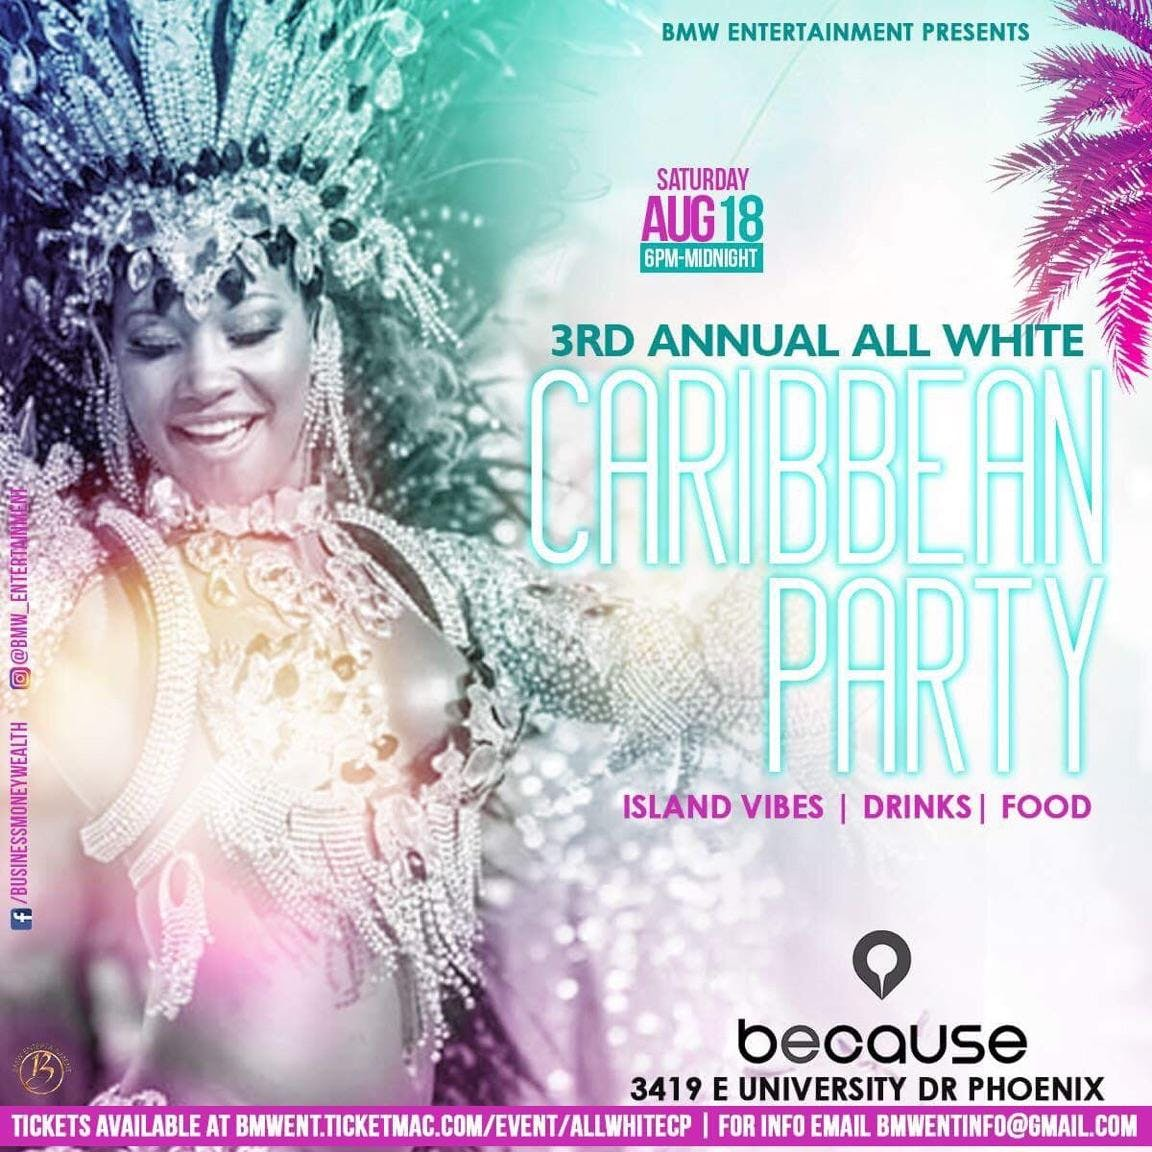 3RD ANNUAL ALL WHITE CARIBBEAN PARTY